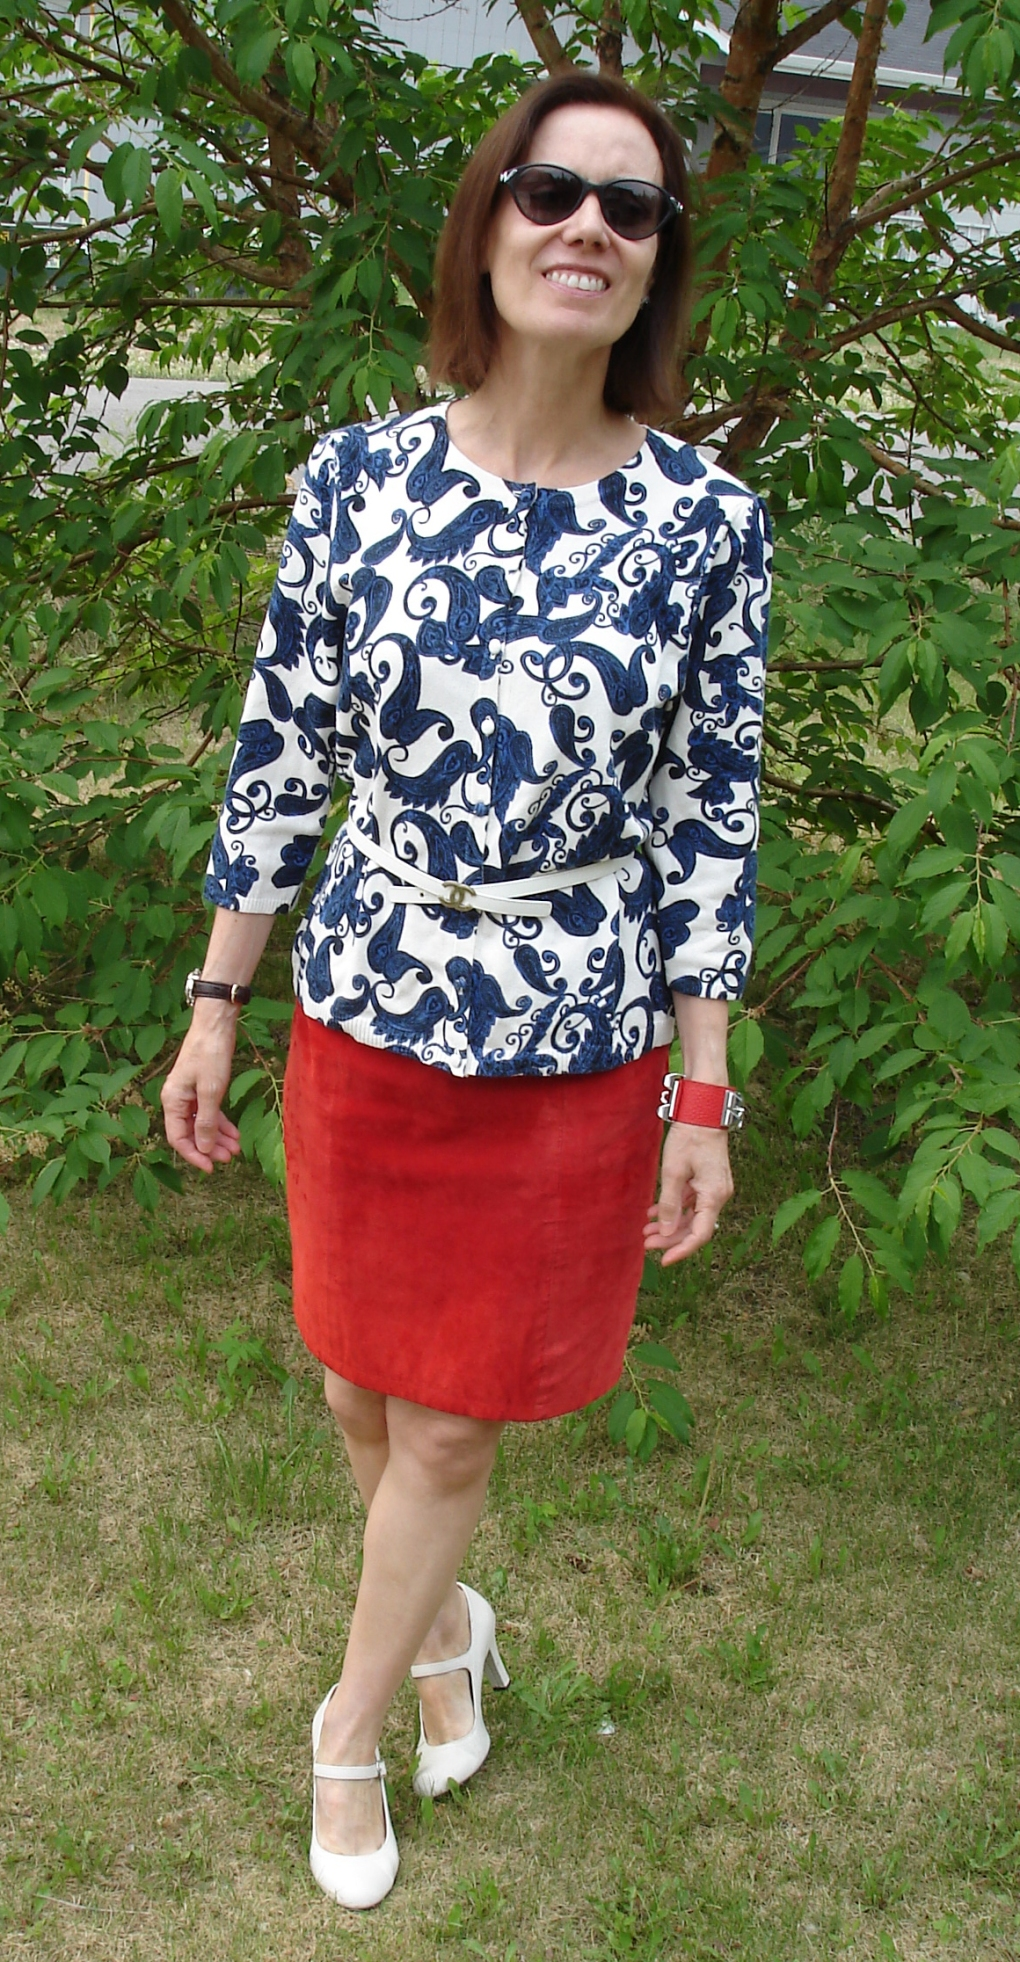 #fashionover50 red white and blue outfit for Independence Day @| http://www.highlatitudestyle.com